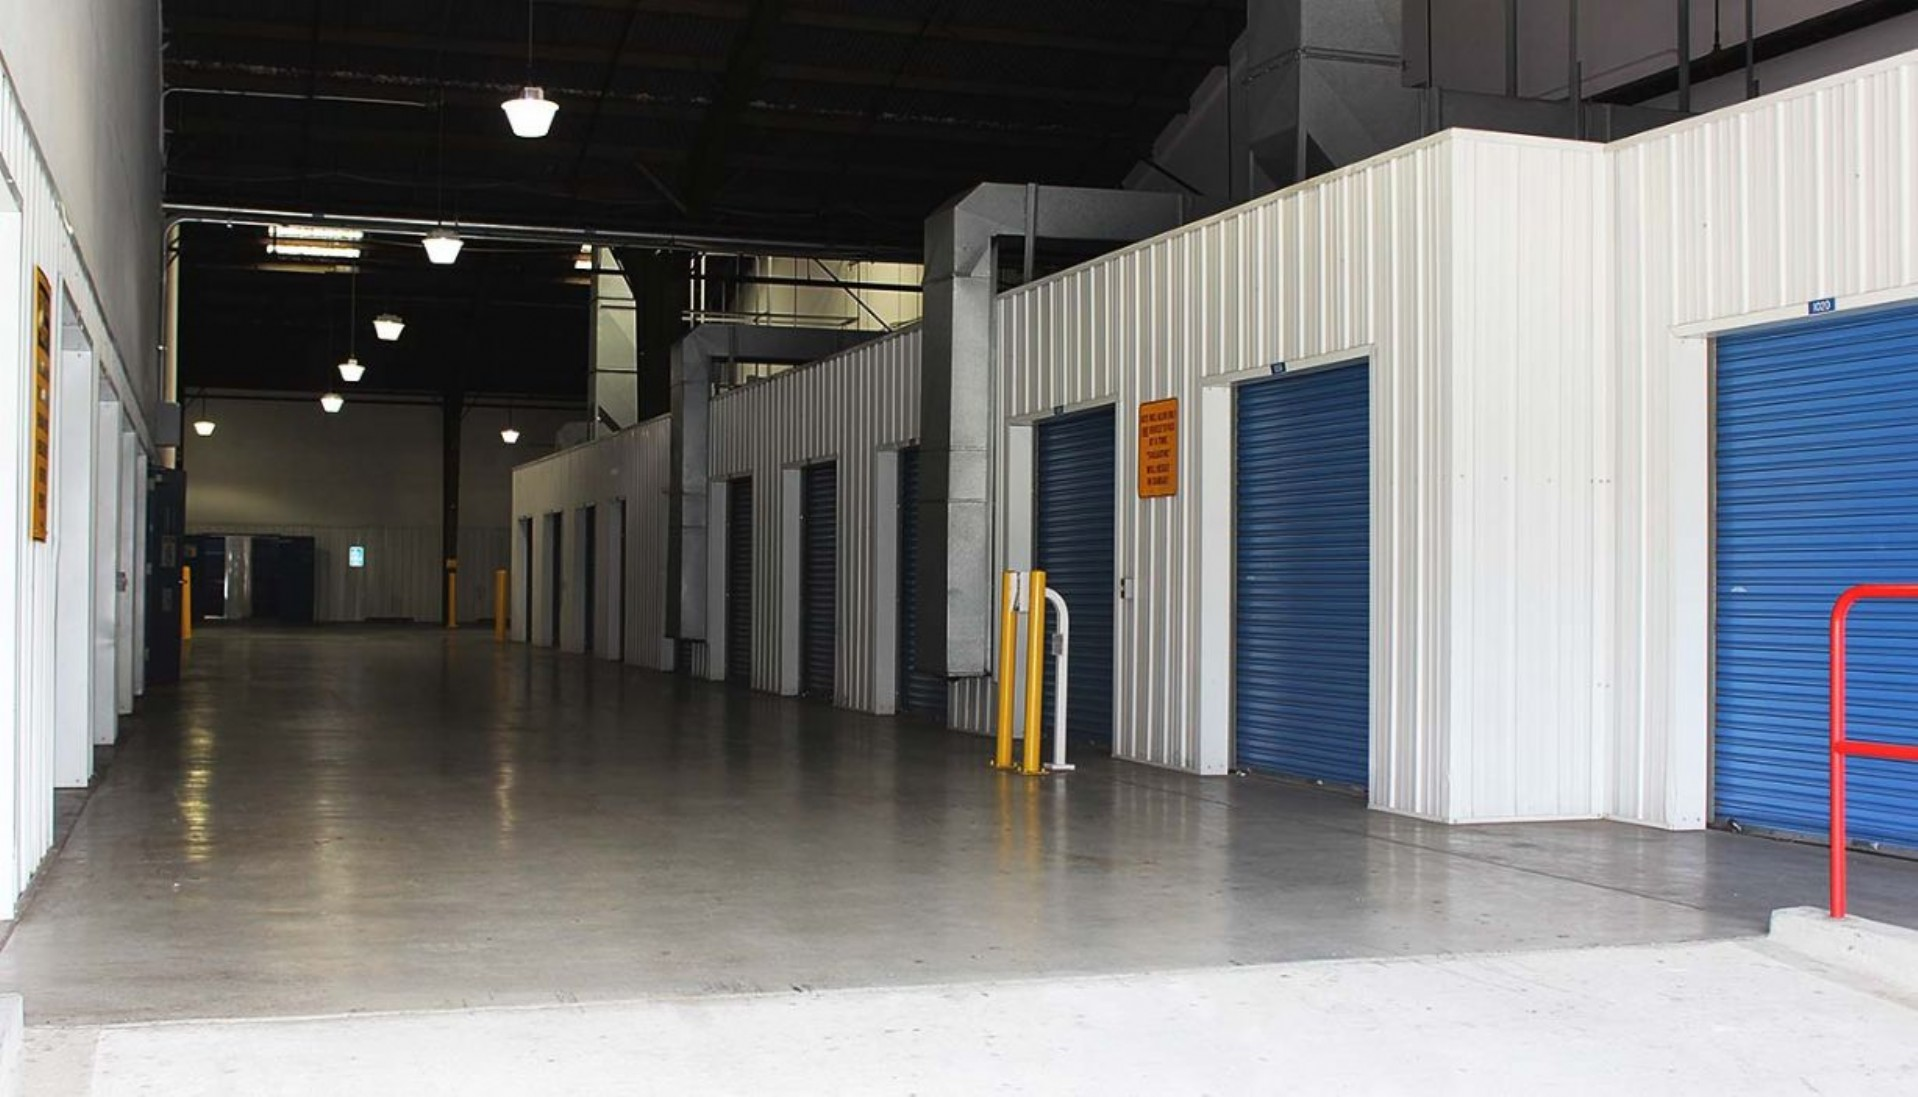 Storage facility hallway with storage lockers on both sides